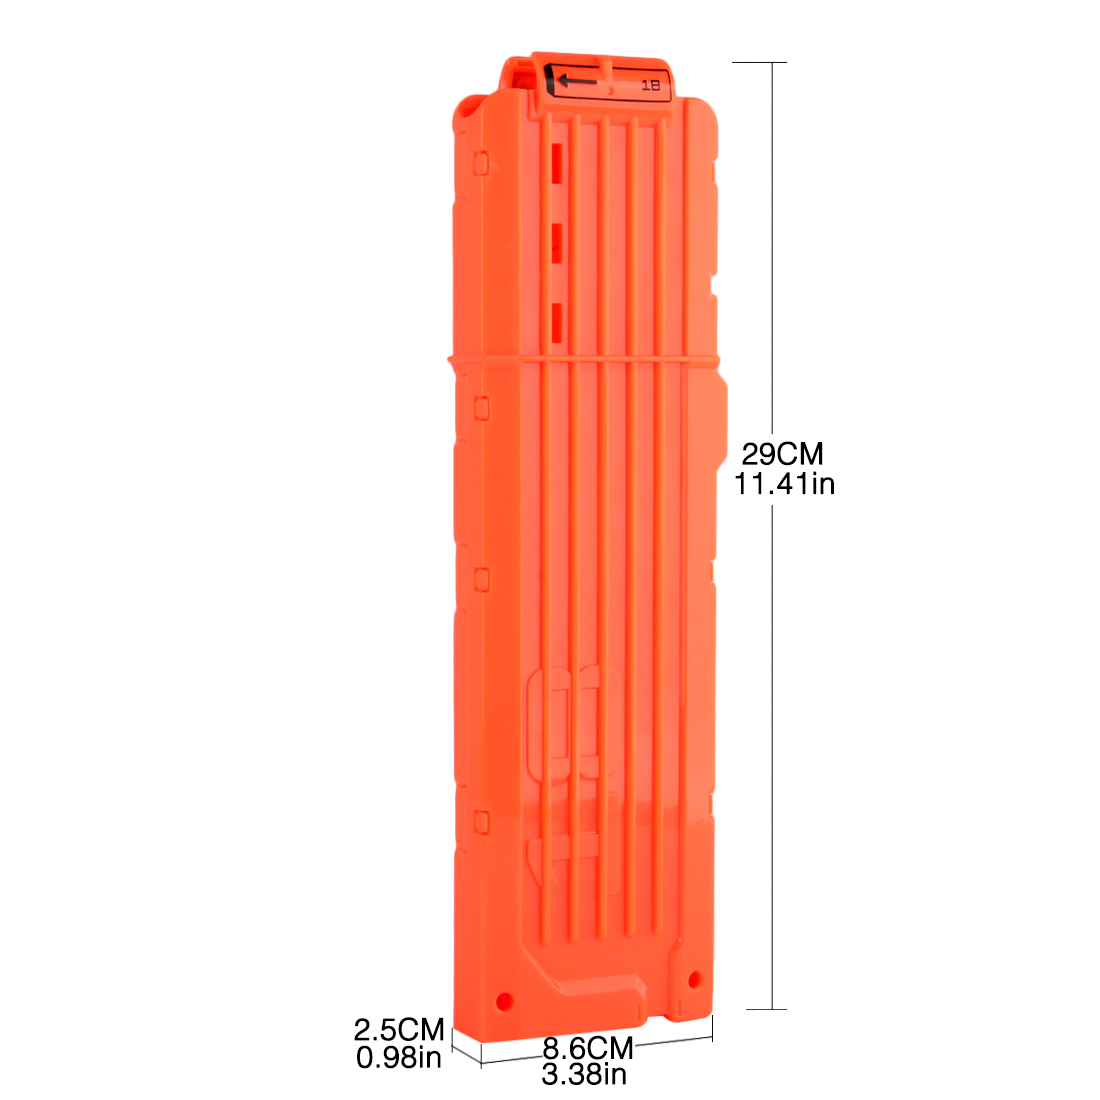 Surwish-Soft-Bullet-Clips-For-Nerf-Toy-Gun-18-Bullets-Ammo-Cartridge-Dart-For-Nerf-Gun-Clips-Orange-1